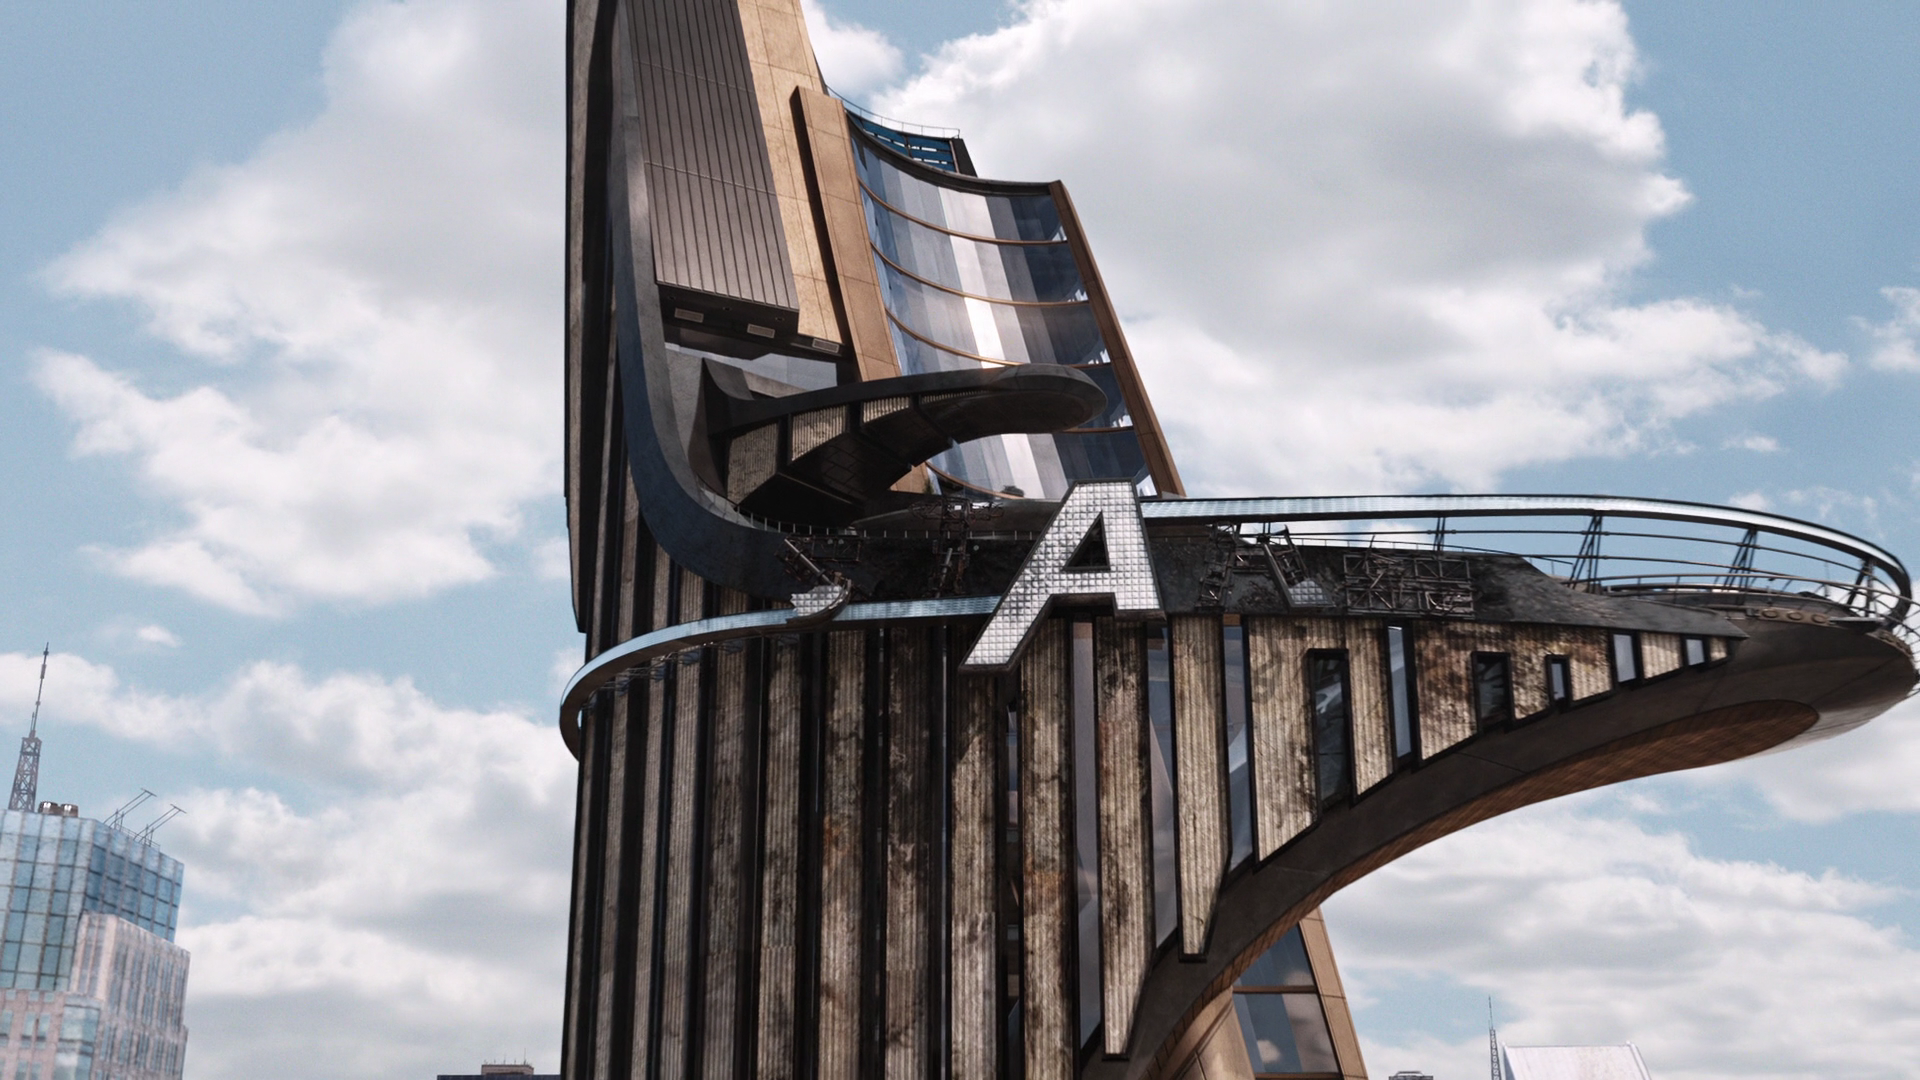 Marvel'sExplanation About Why Avengers Tower Doesn't Appear On Netflix Shows Is A Load Of Crap